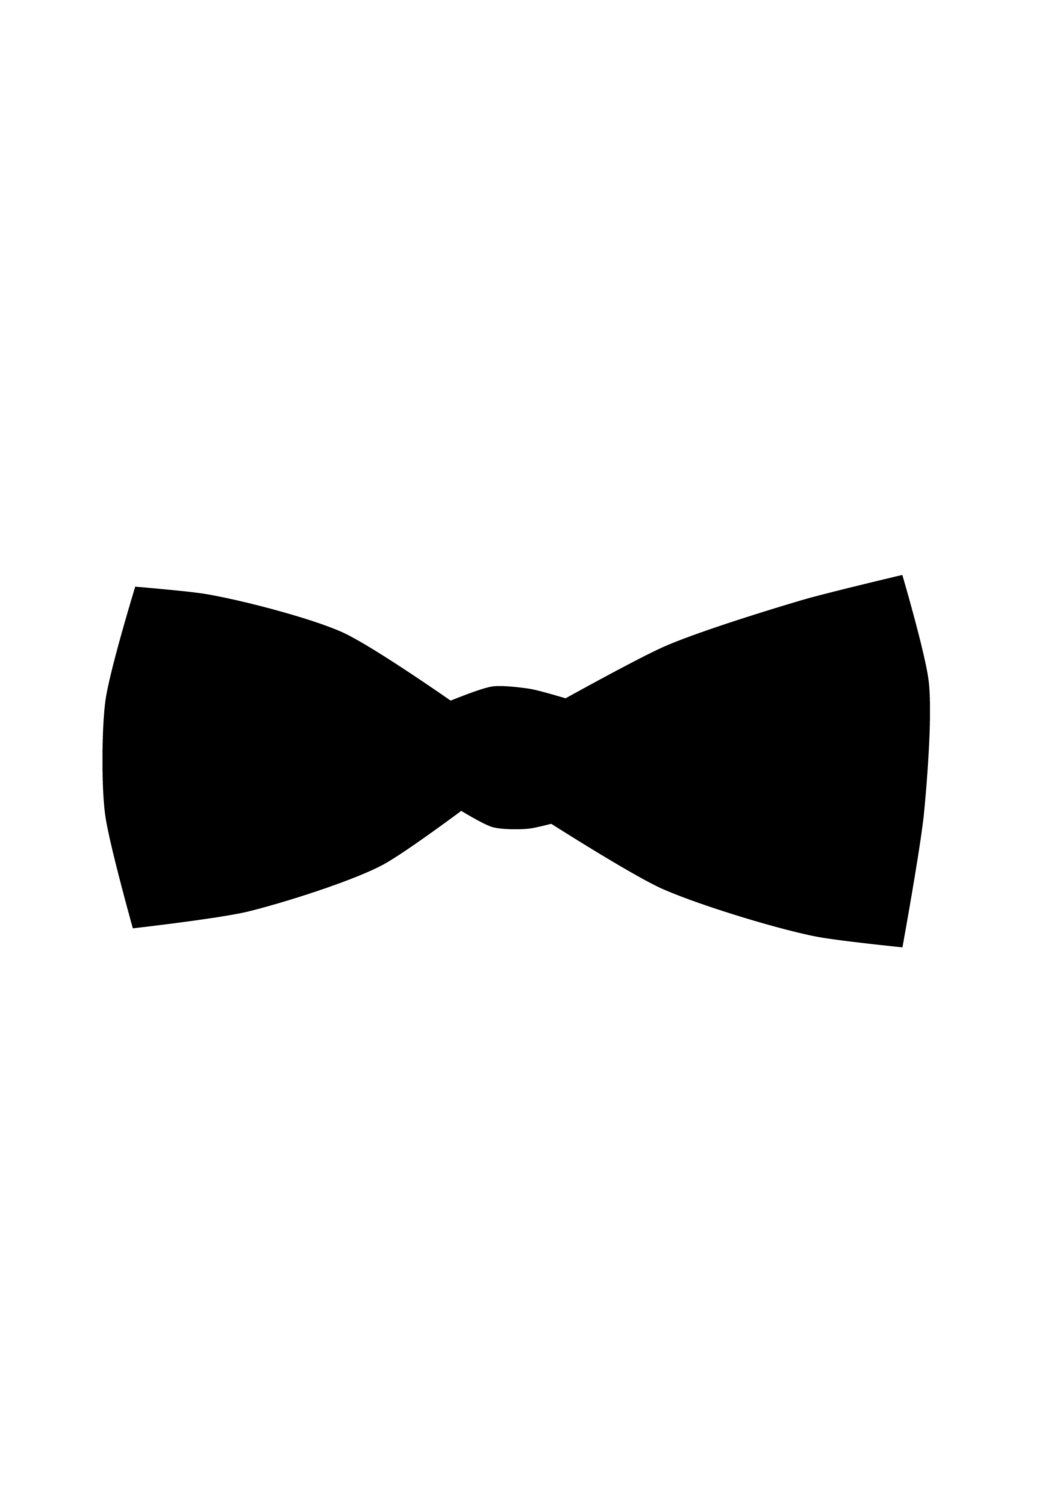 Cute Bow Tie Drawing Bow tie black, bow tie...